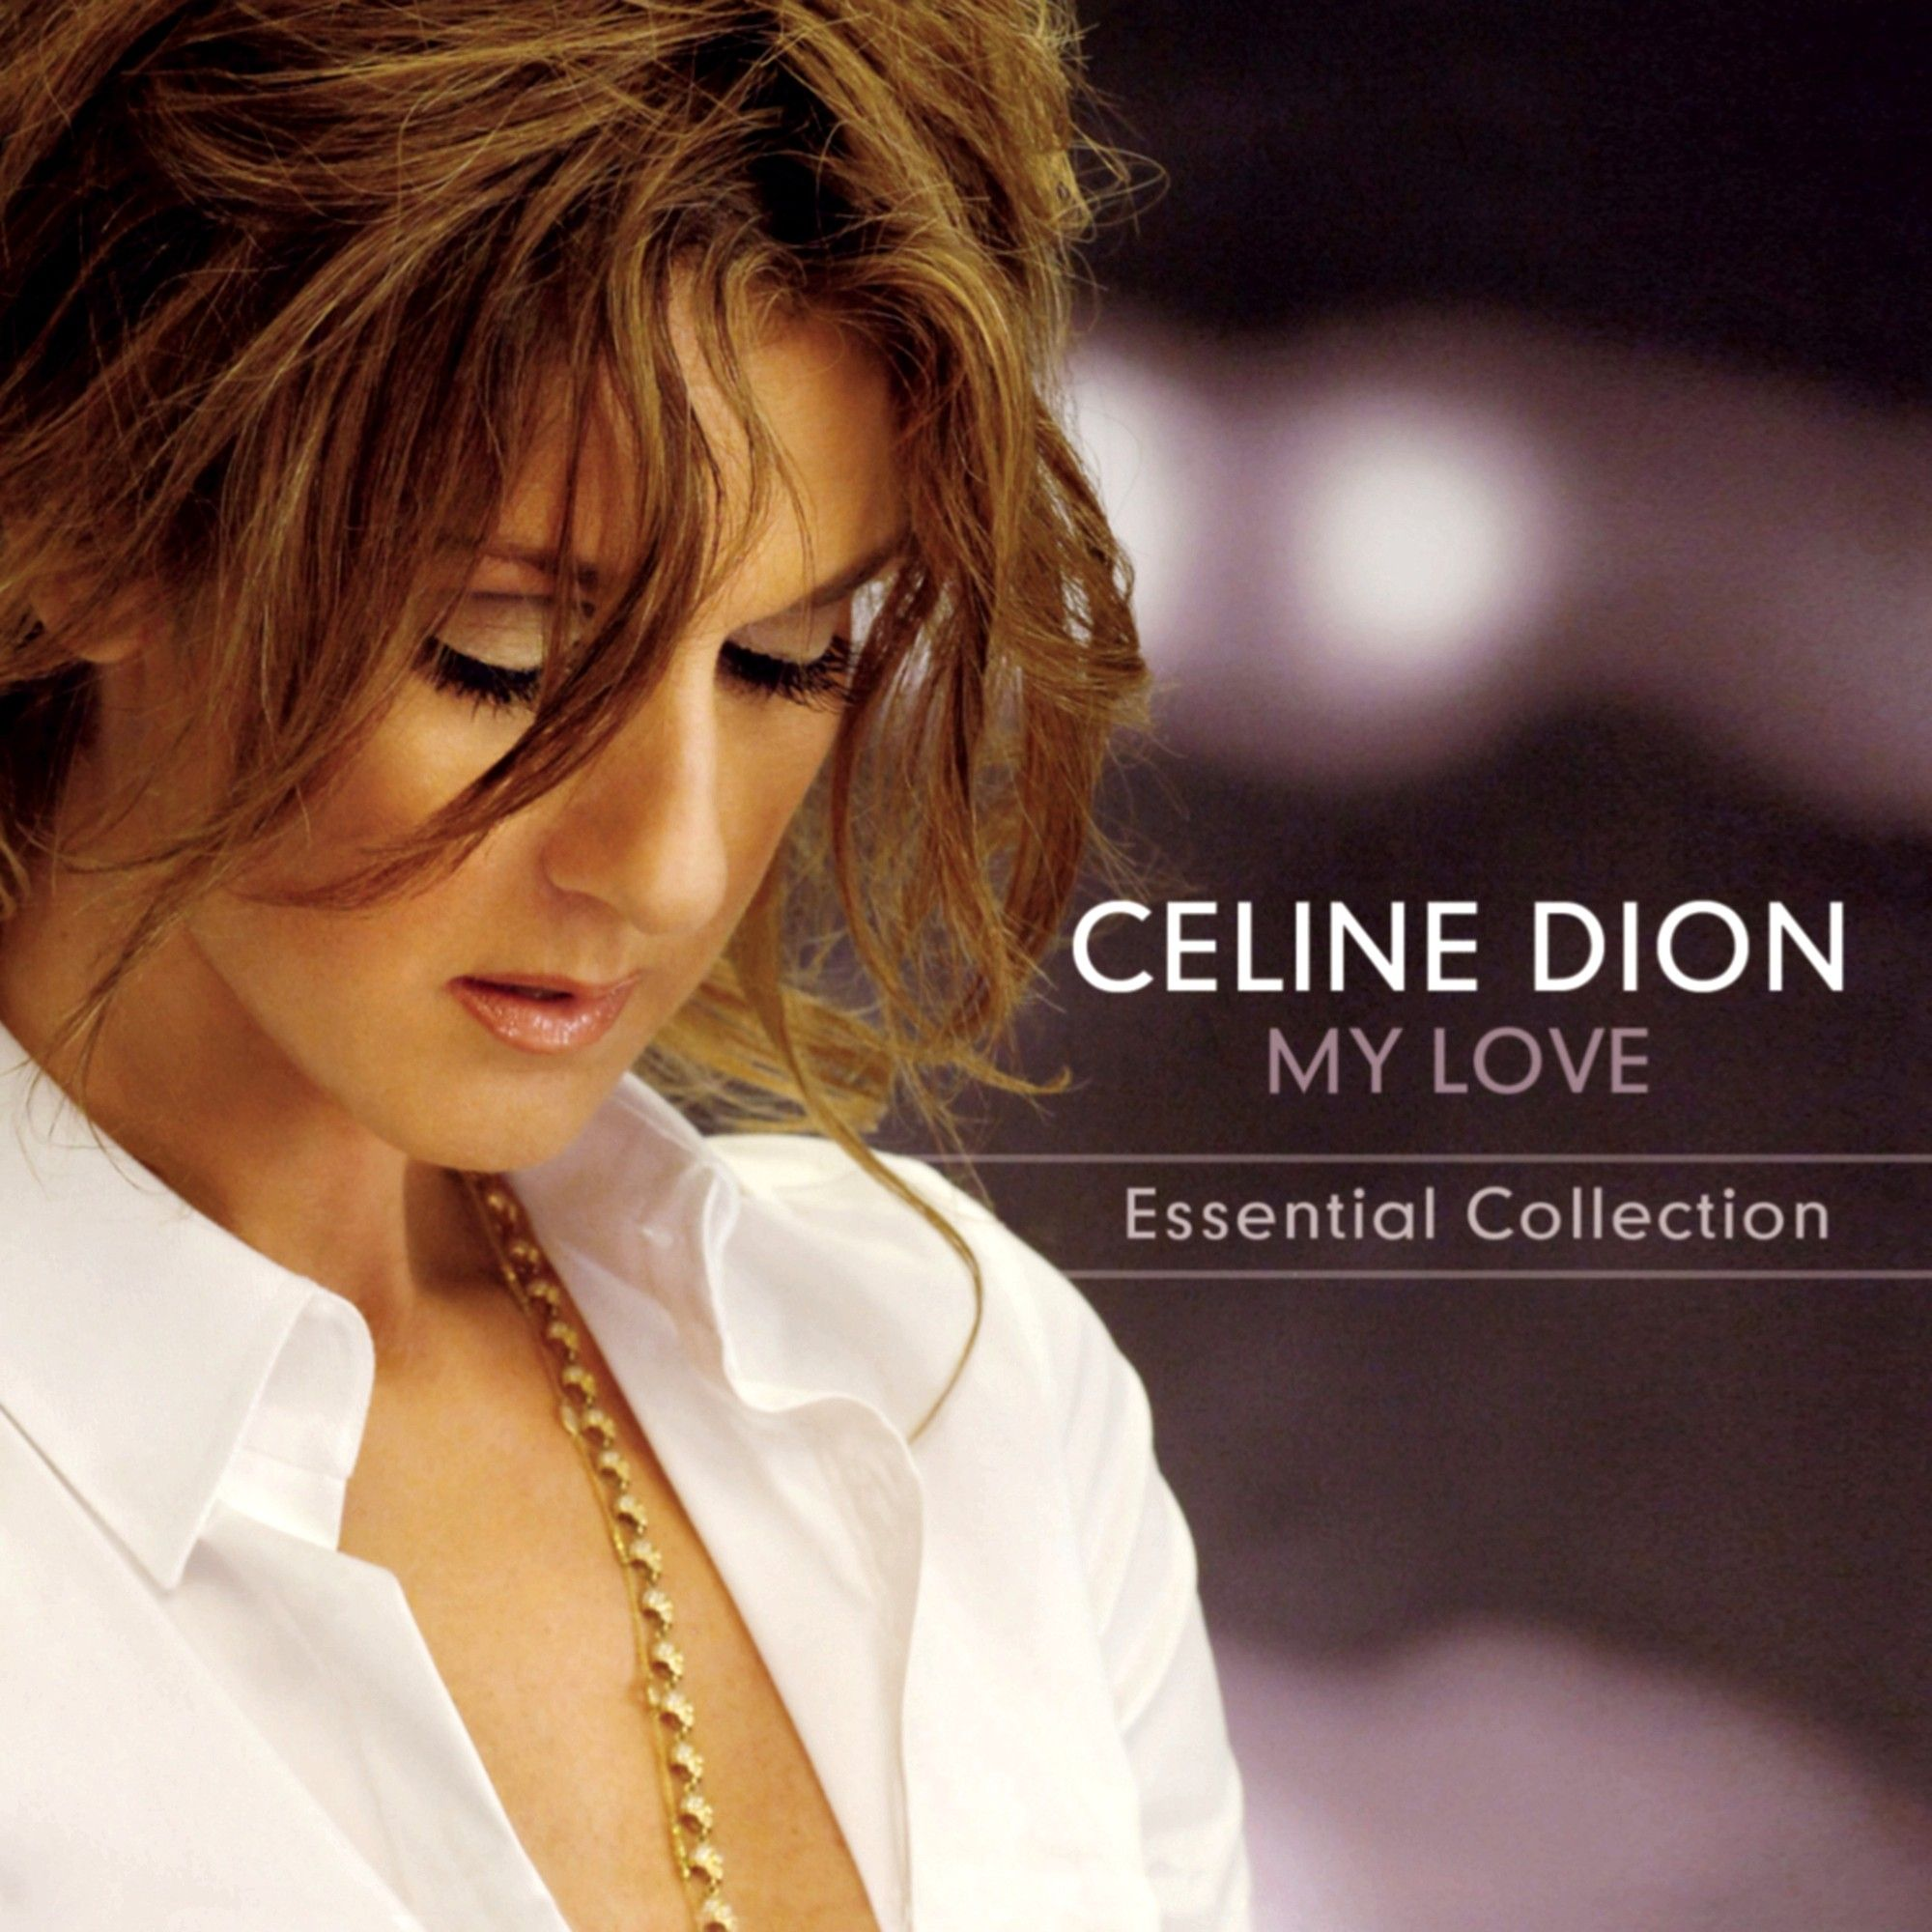 My Love Essential Collection Is A Greatest Hits Album By Canadian Recording Artist Celine Dion It Was Releas Celine Dion Songs Celine Dion Albums Celine Dion